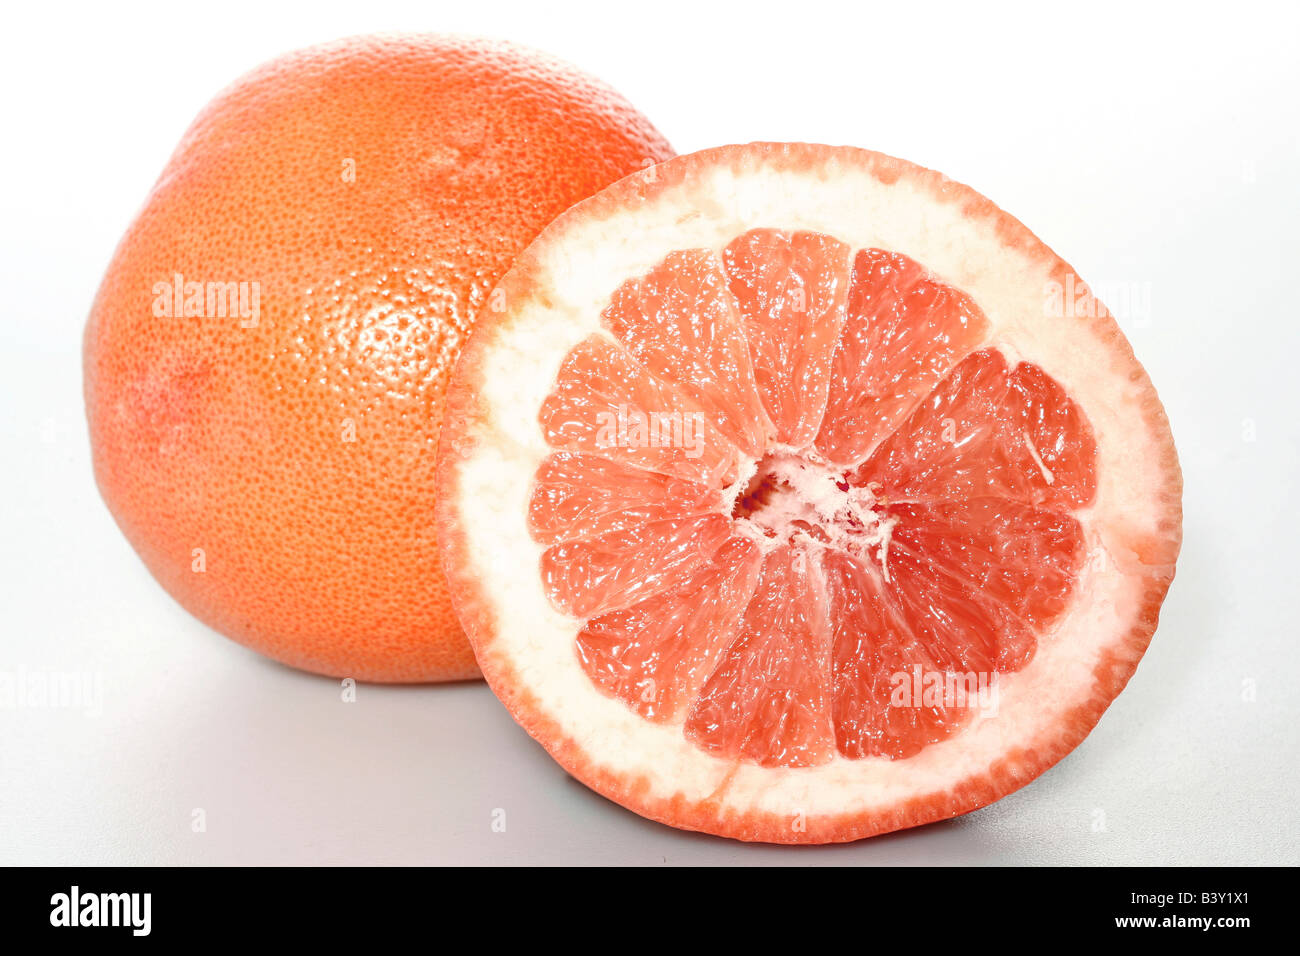 Close up of a Grapefruit and a slice - Stock Image